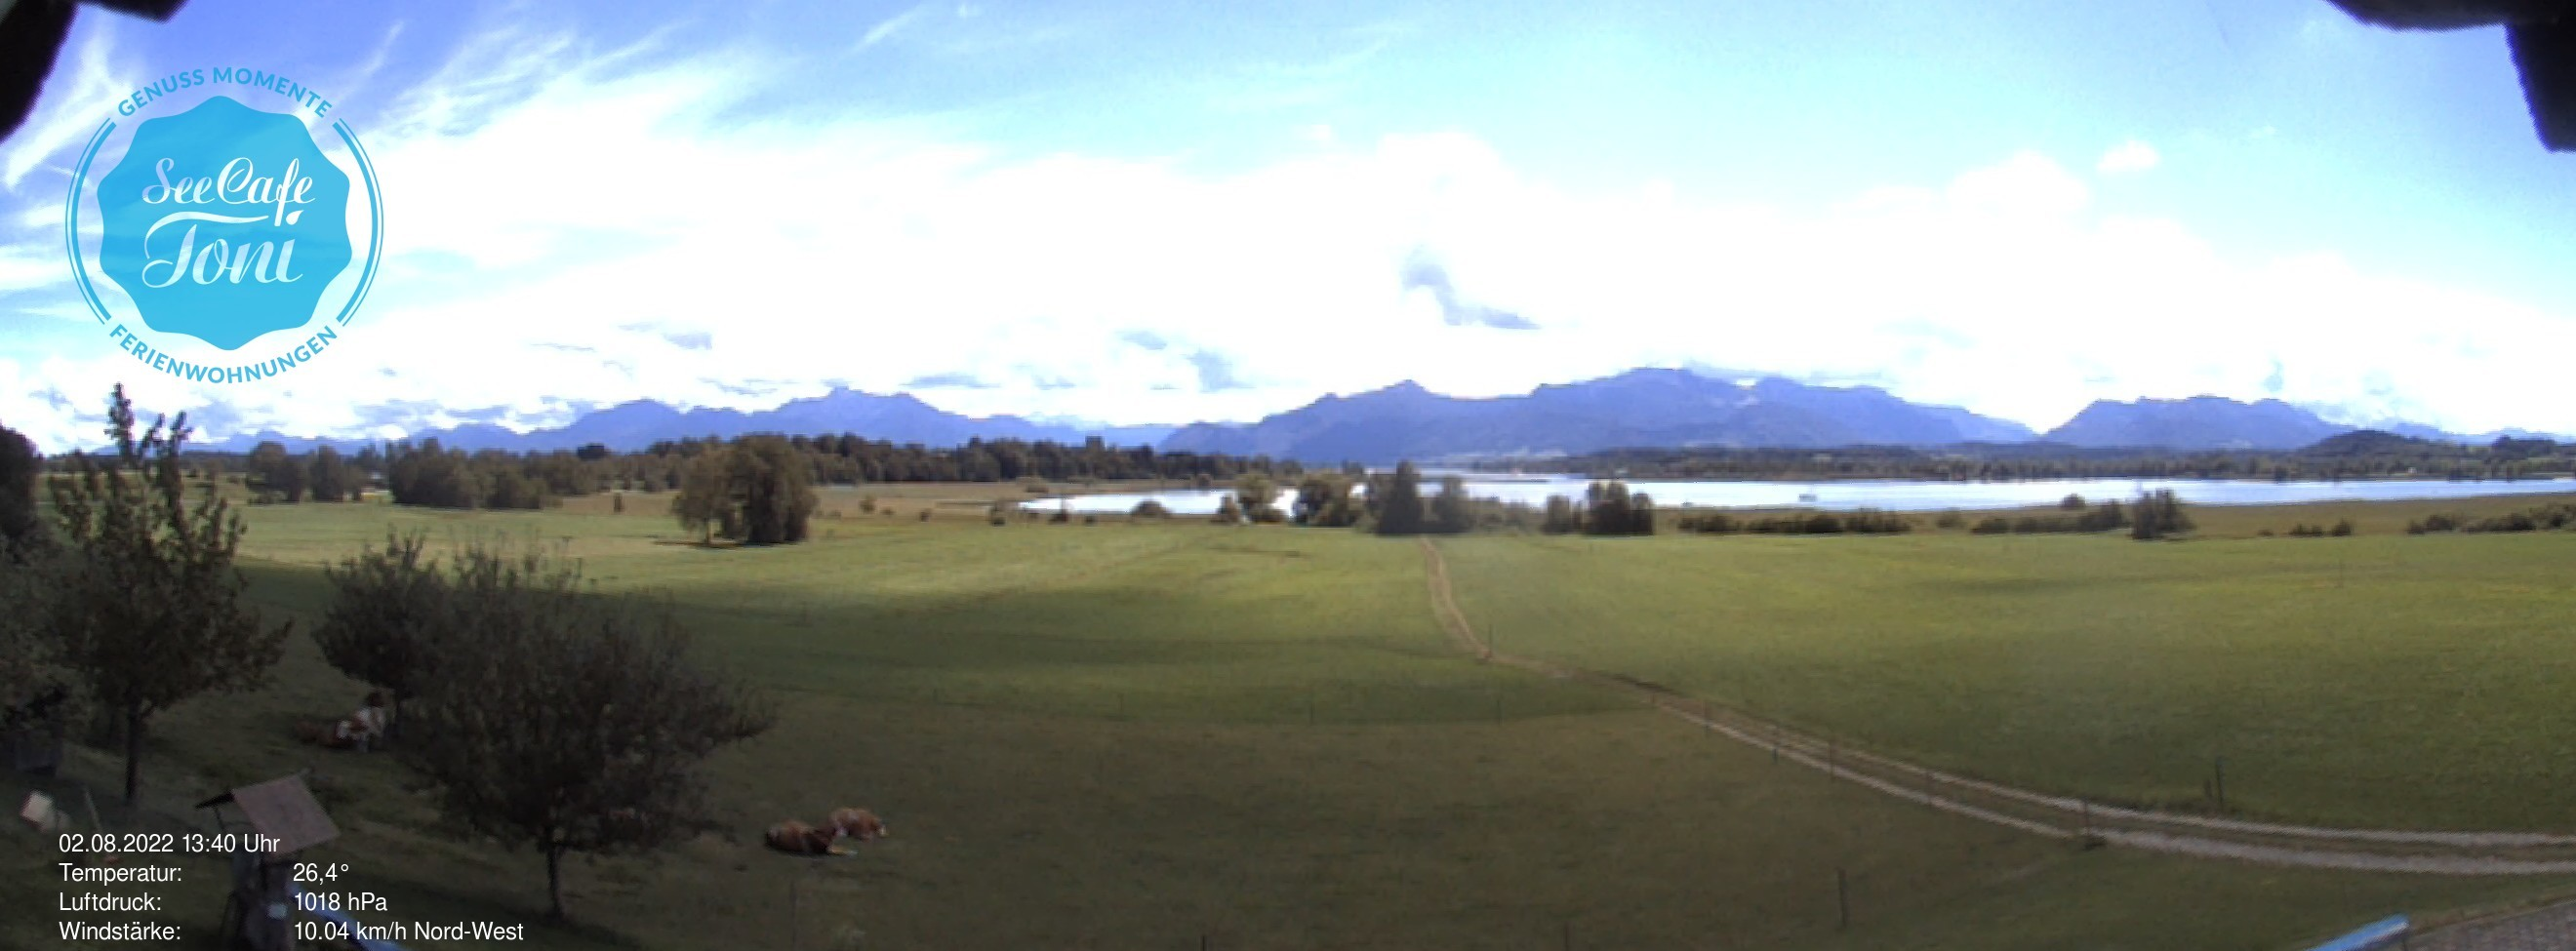 Webcam Seecafe Toni am Chiemsee